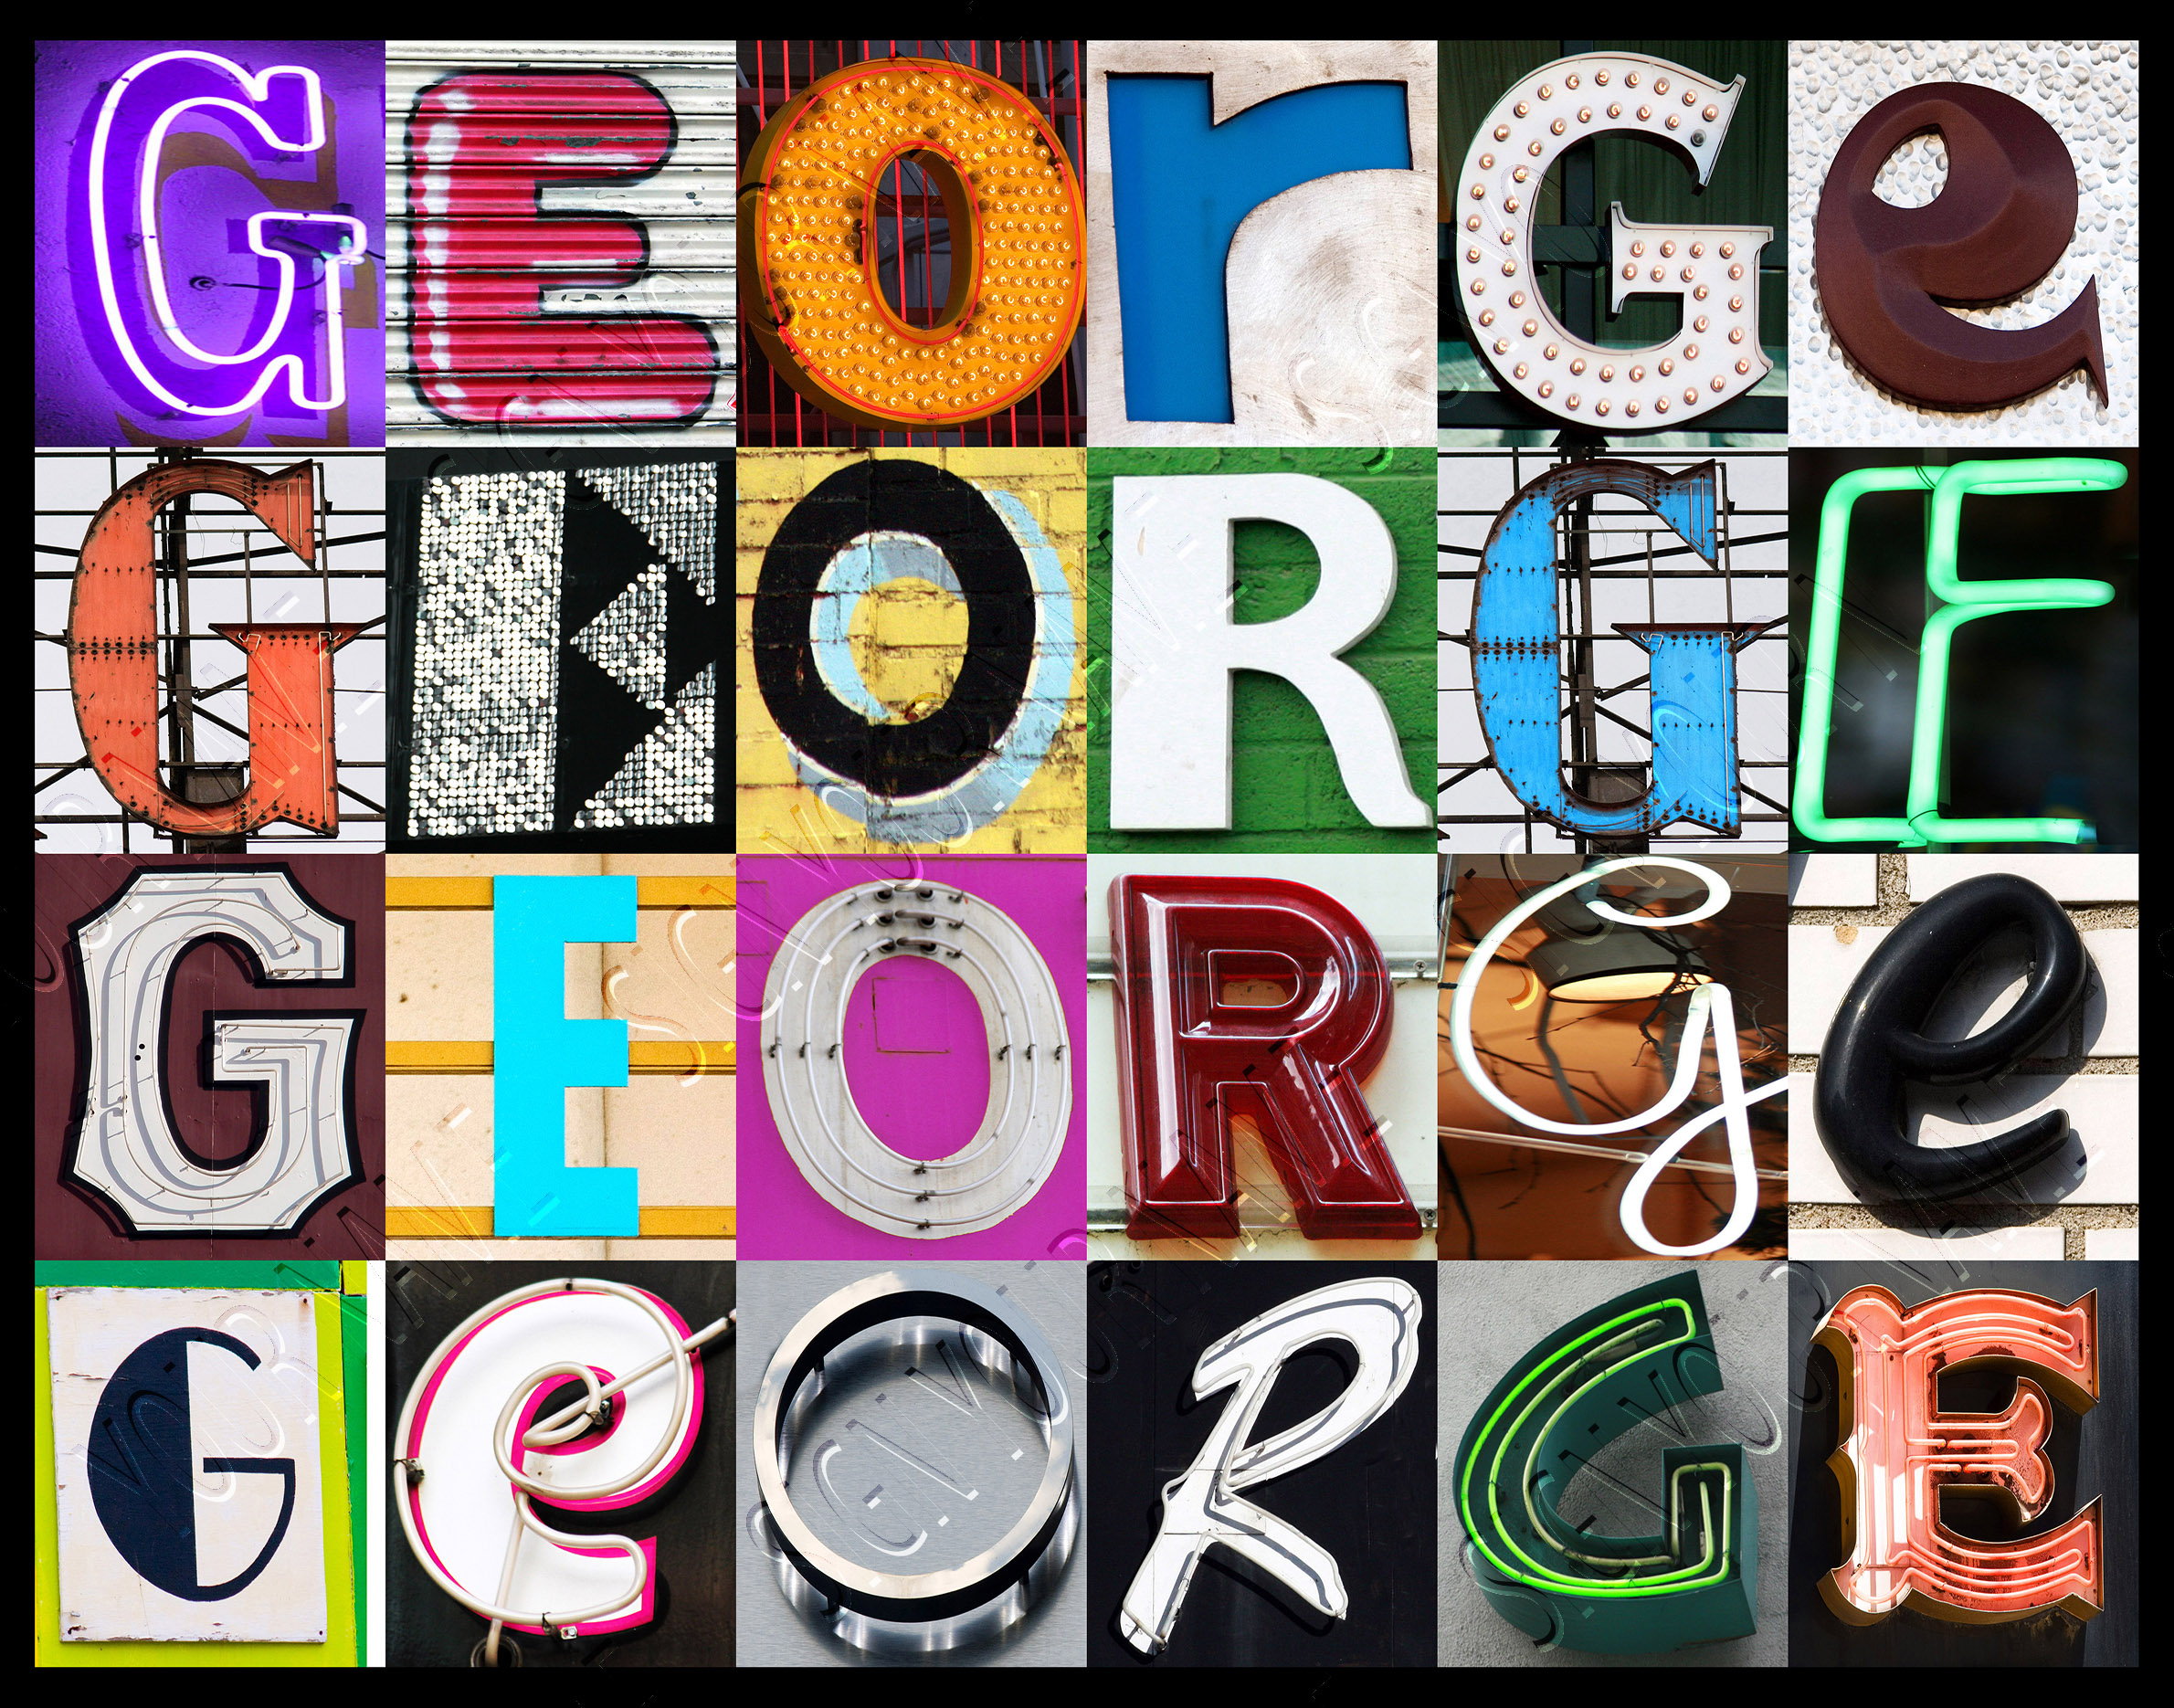 https://www.etsy.com/listing/202370140/personalized-poster-featuring-george-in?ref=shop_home_active_3&ga_search_query=george